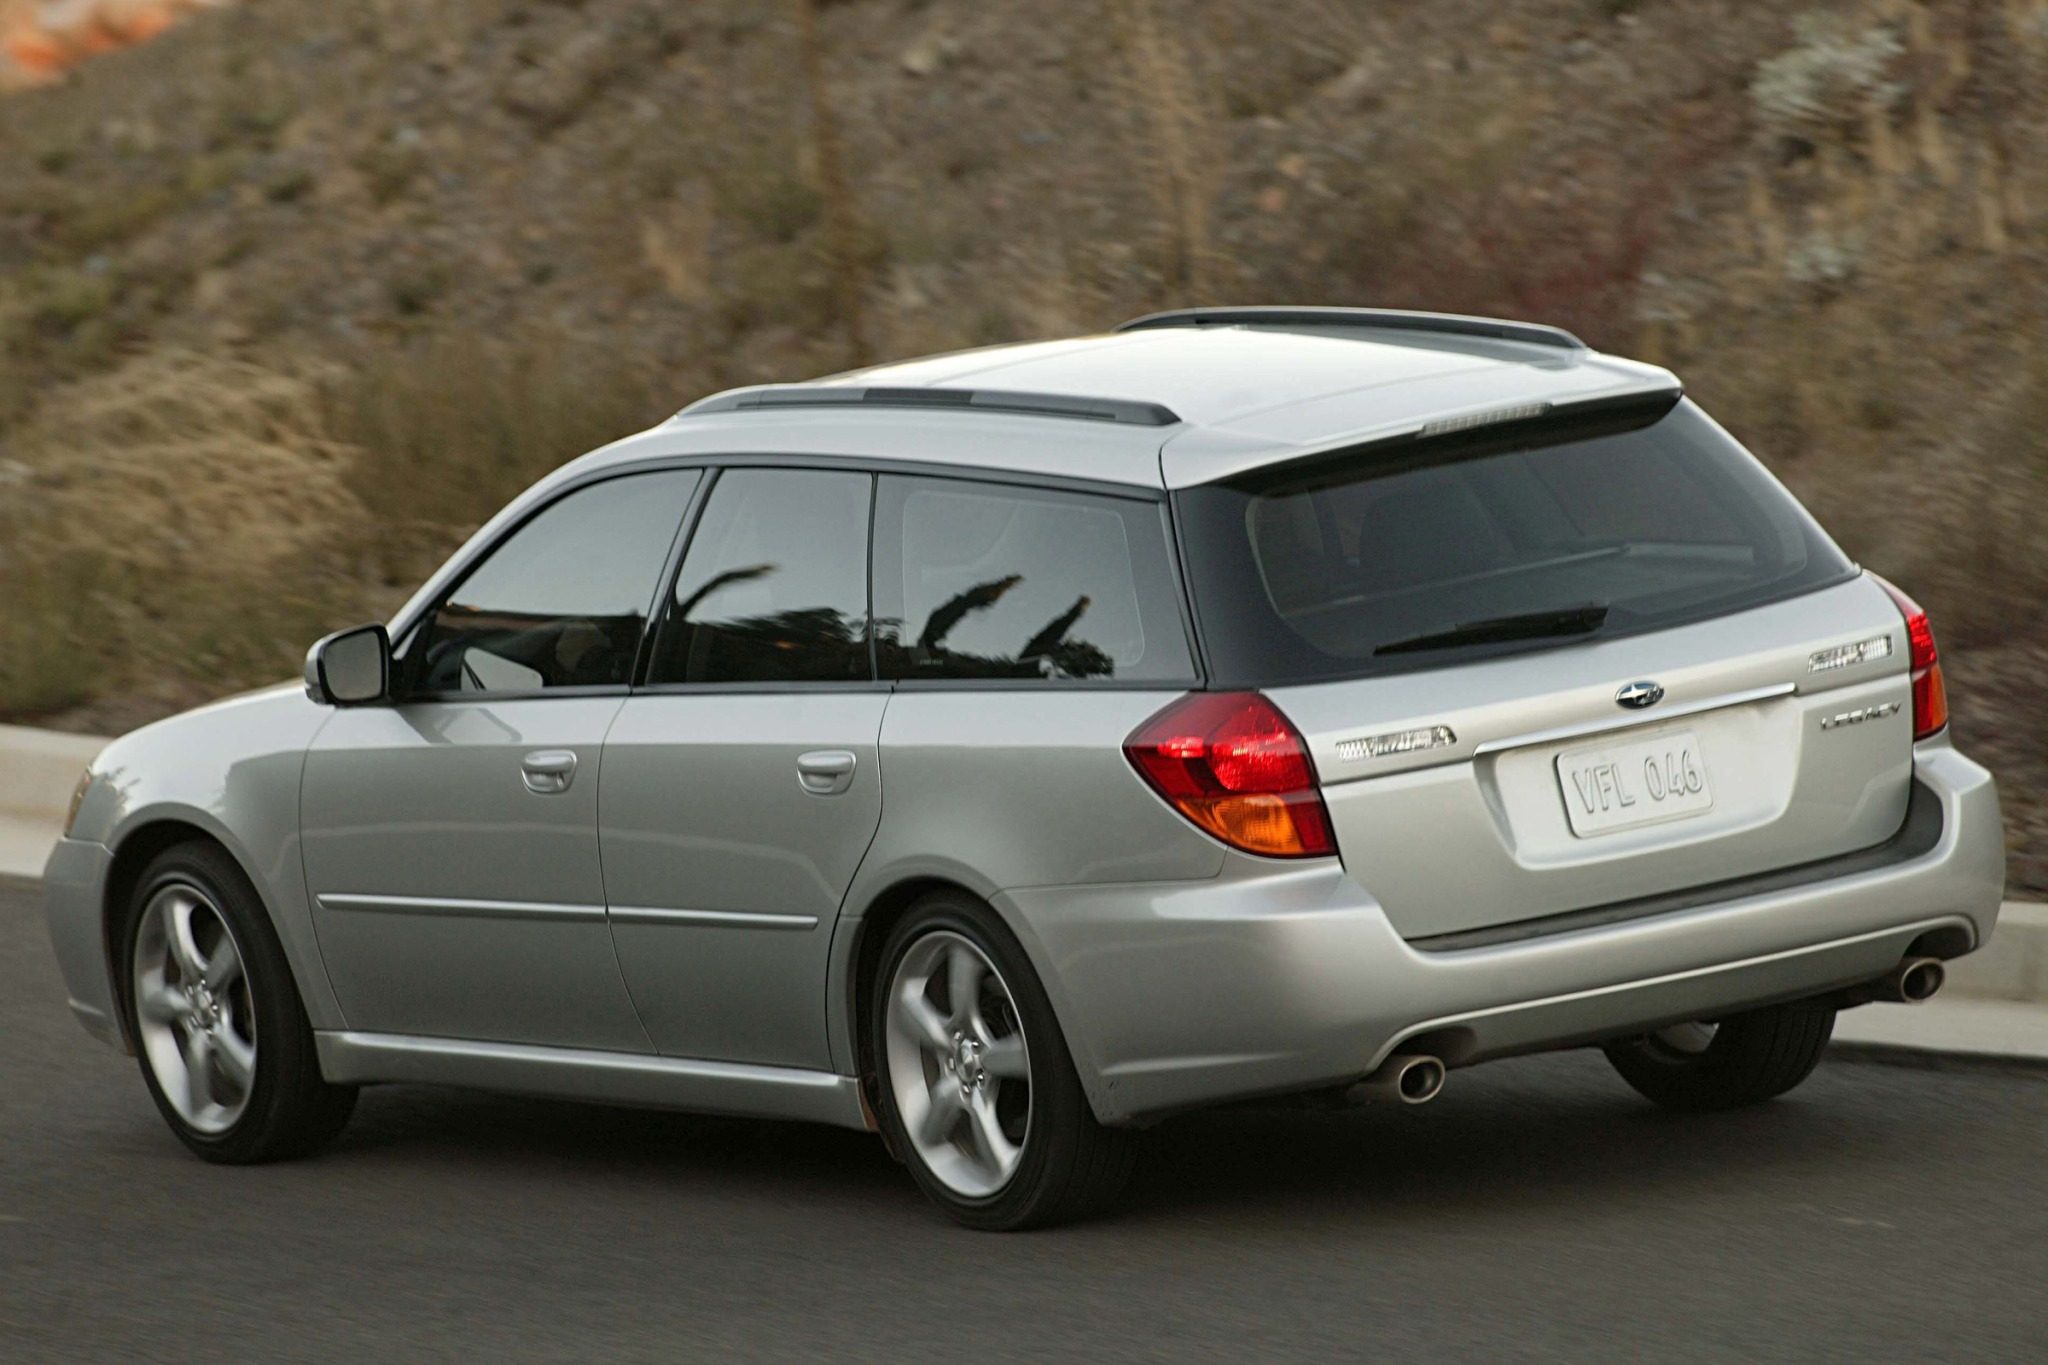 2007 Subaru Legacy Silver 200 Interior And Exterior Images